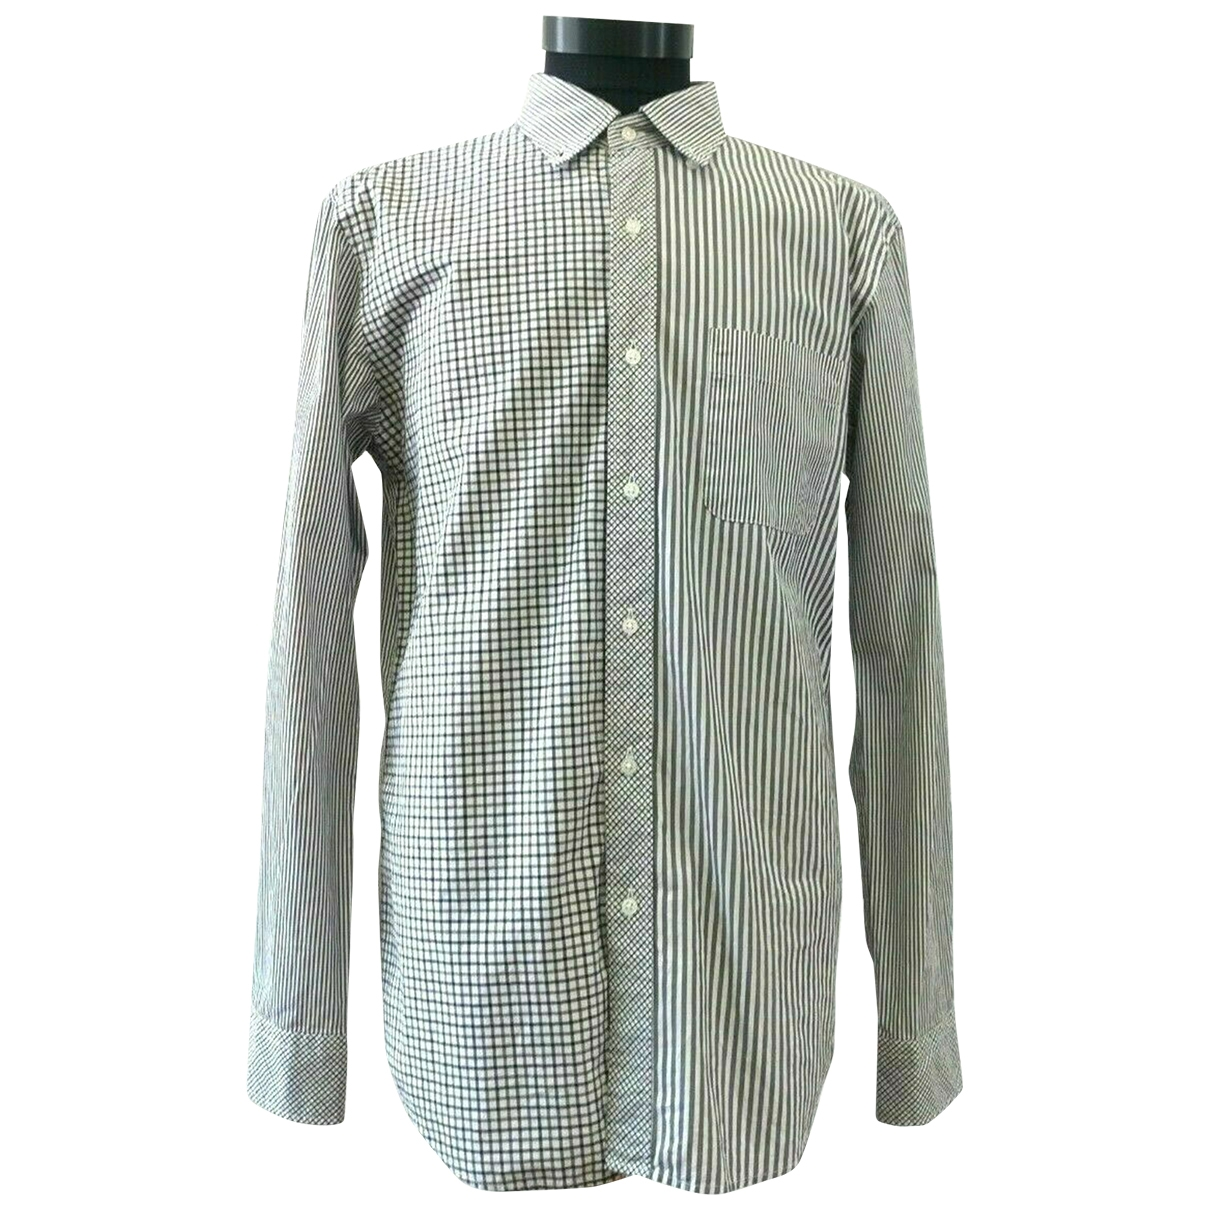 Uniqlo \N Blue Cotton Shirts for Men M International